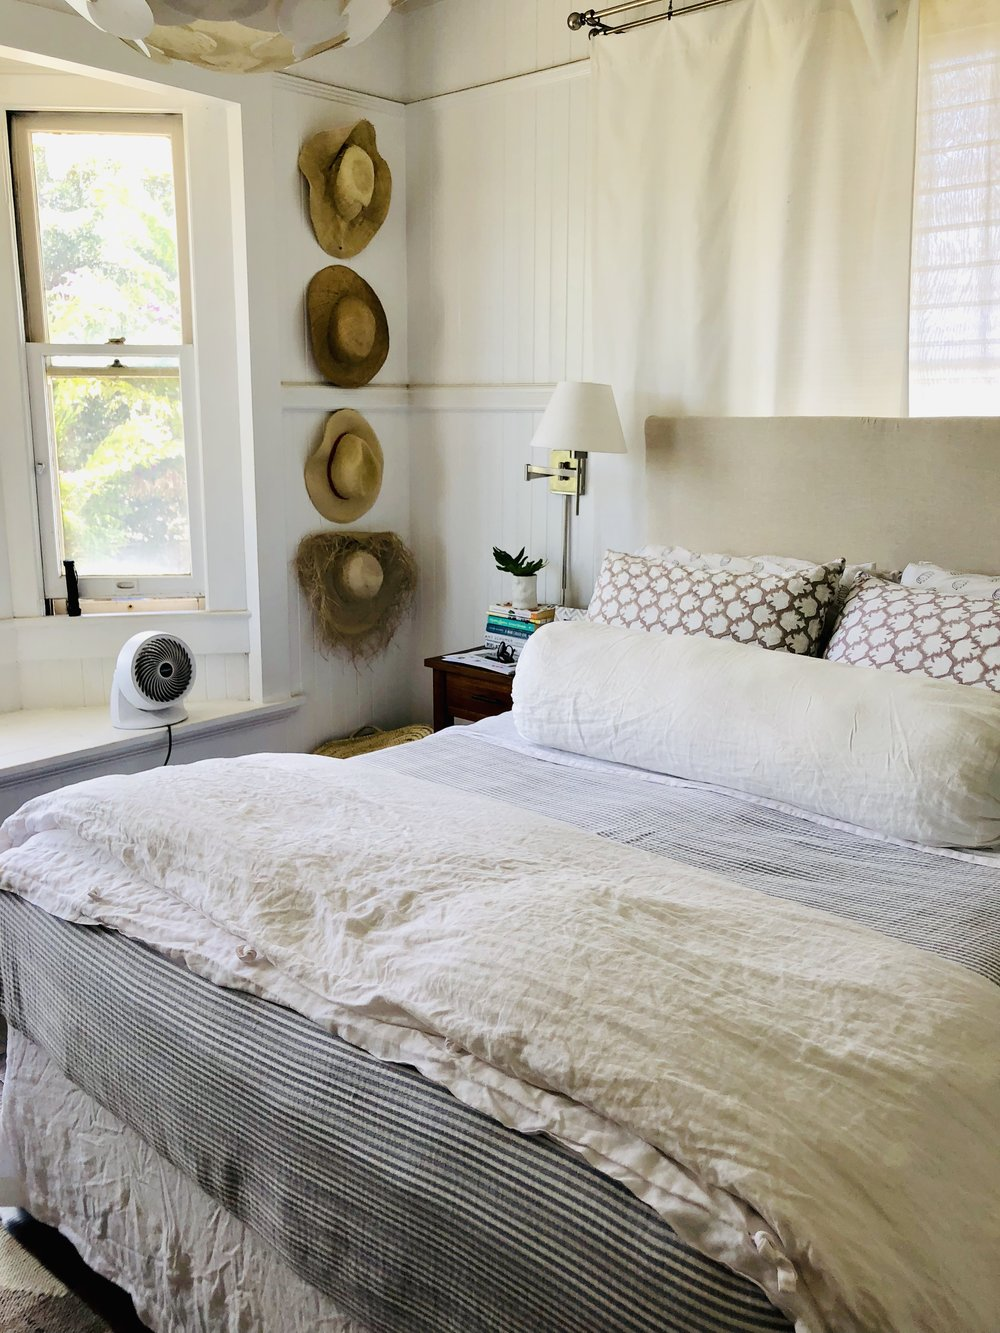 Clean Lines.   Fine Linen  . Functional Art = L❤️VE!  As I have written about many times before, repetition with similar items used in display is pleasing to the eye and promotes Visual Peace!